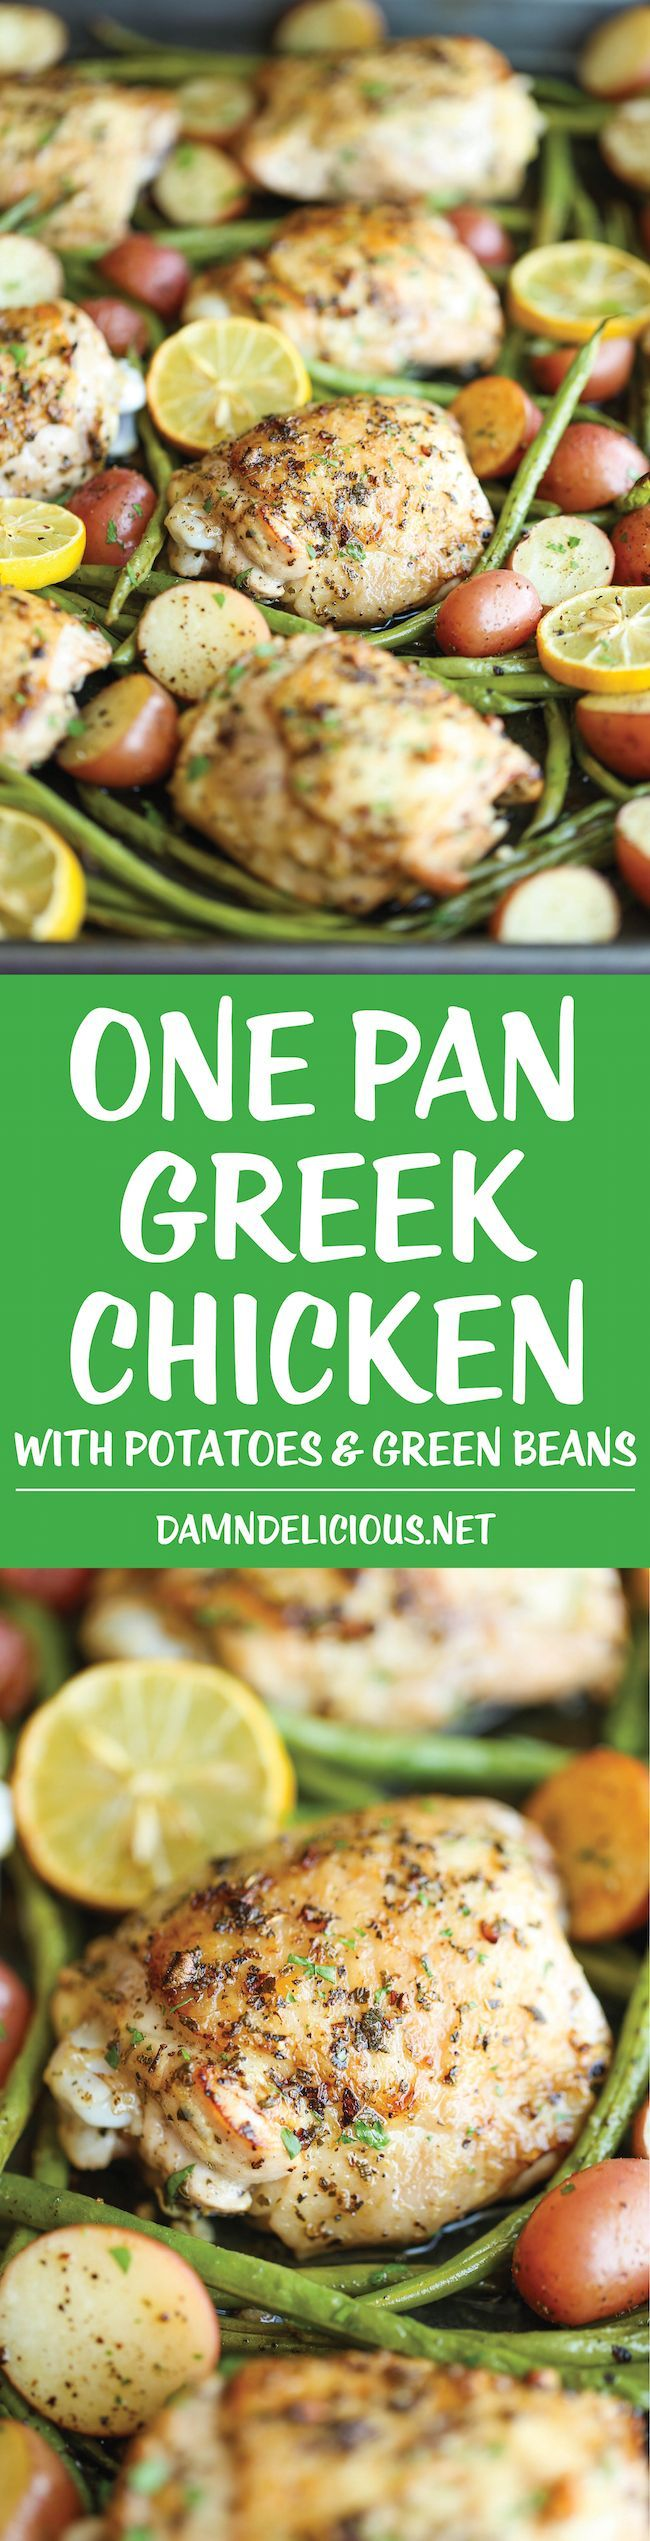 One Pan Greek Chicken - The easiest no-fuss weeknight meal with a simple Greek marinade - all cooked on a single pan with roasted potatoes and green beans! I used chicken breasts instead and added Kalama olives with some of their juice. Increase cooking time by 15-20 minutes and put a foil cover the roasting pan for that time to soften the potatoes. family approved recipes, family friendly recipes #recipe